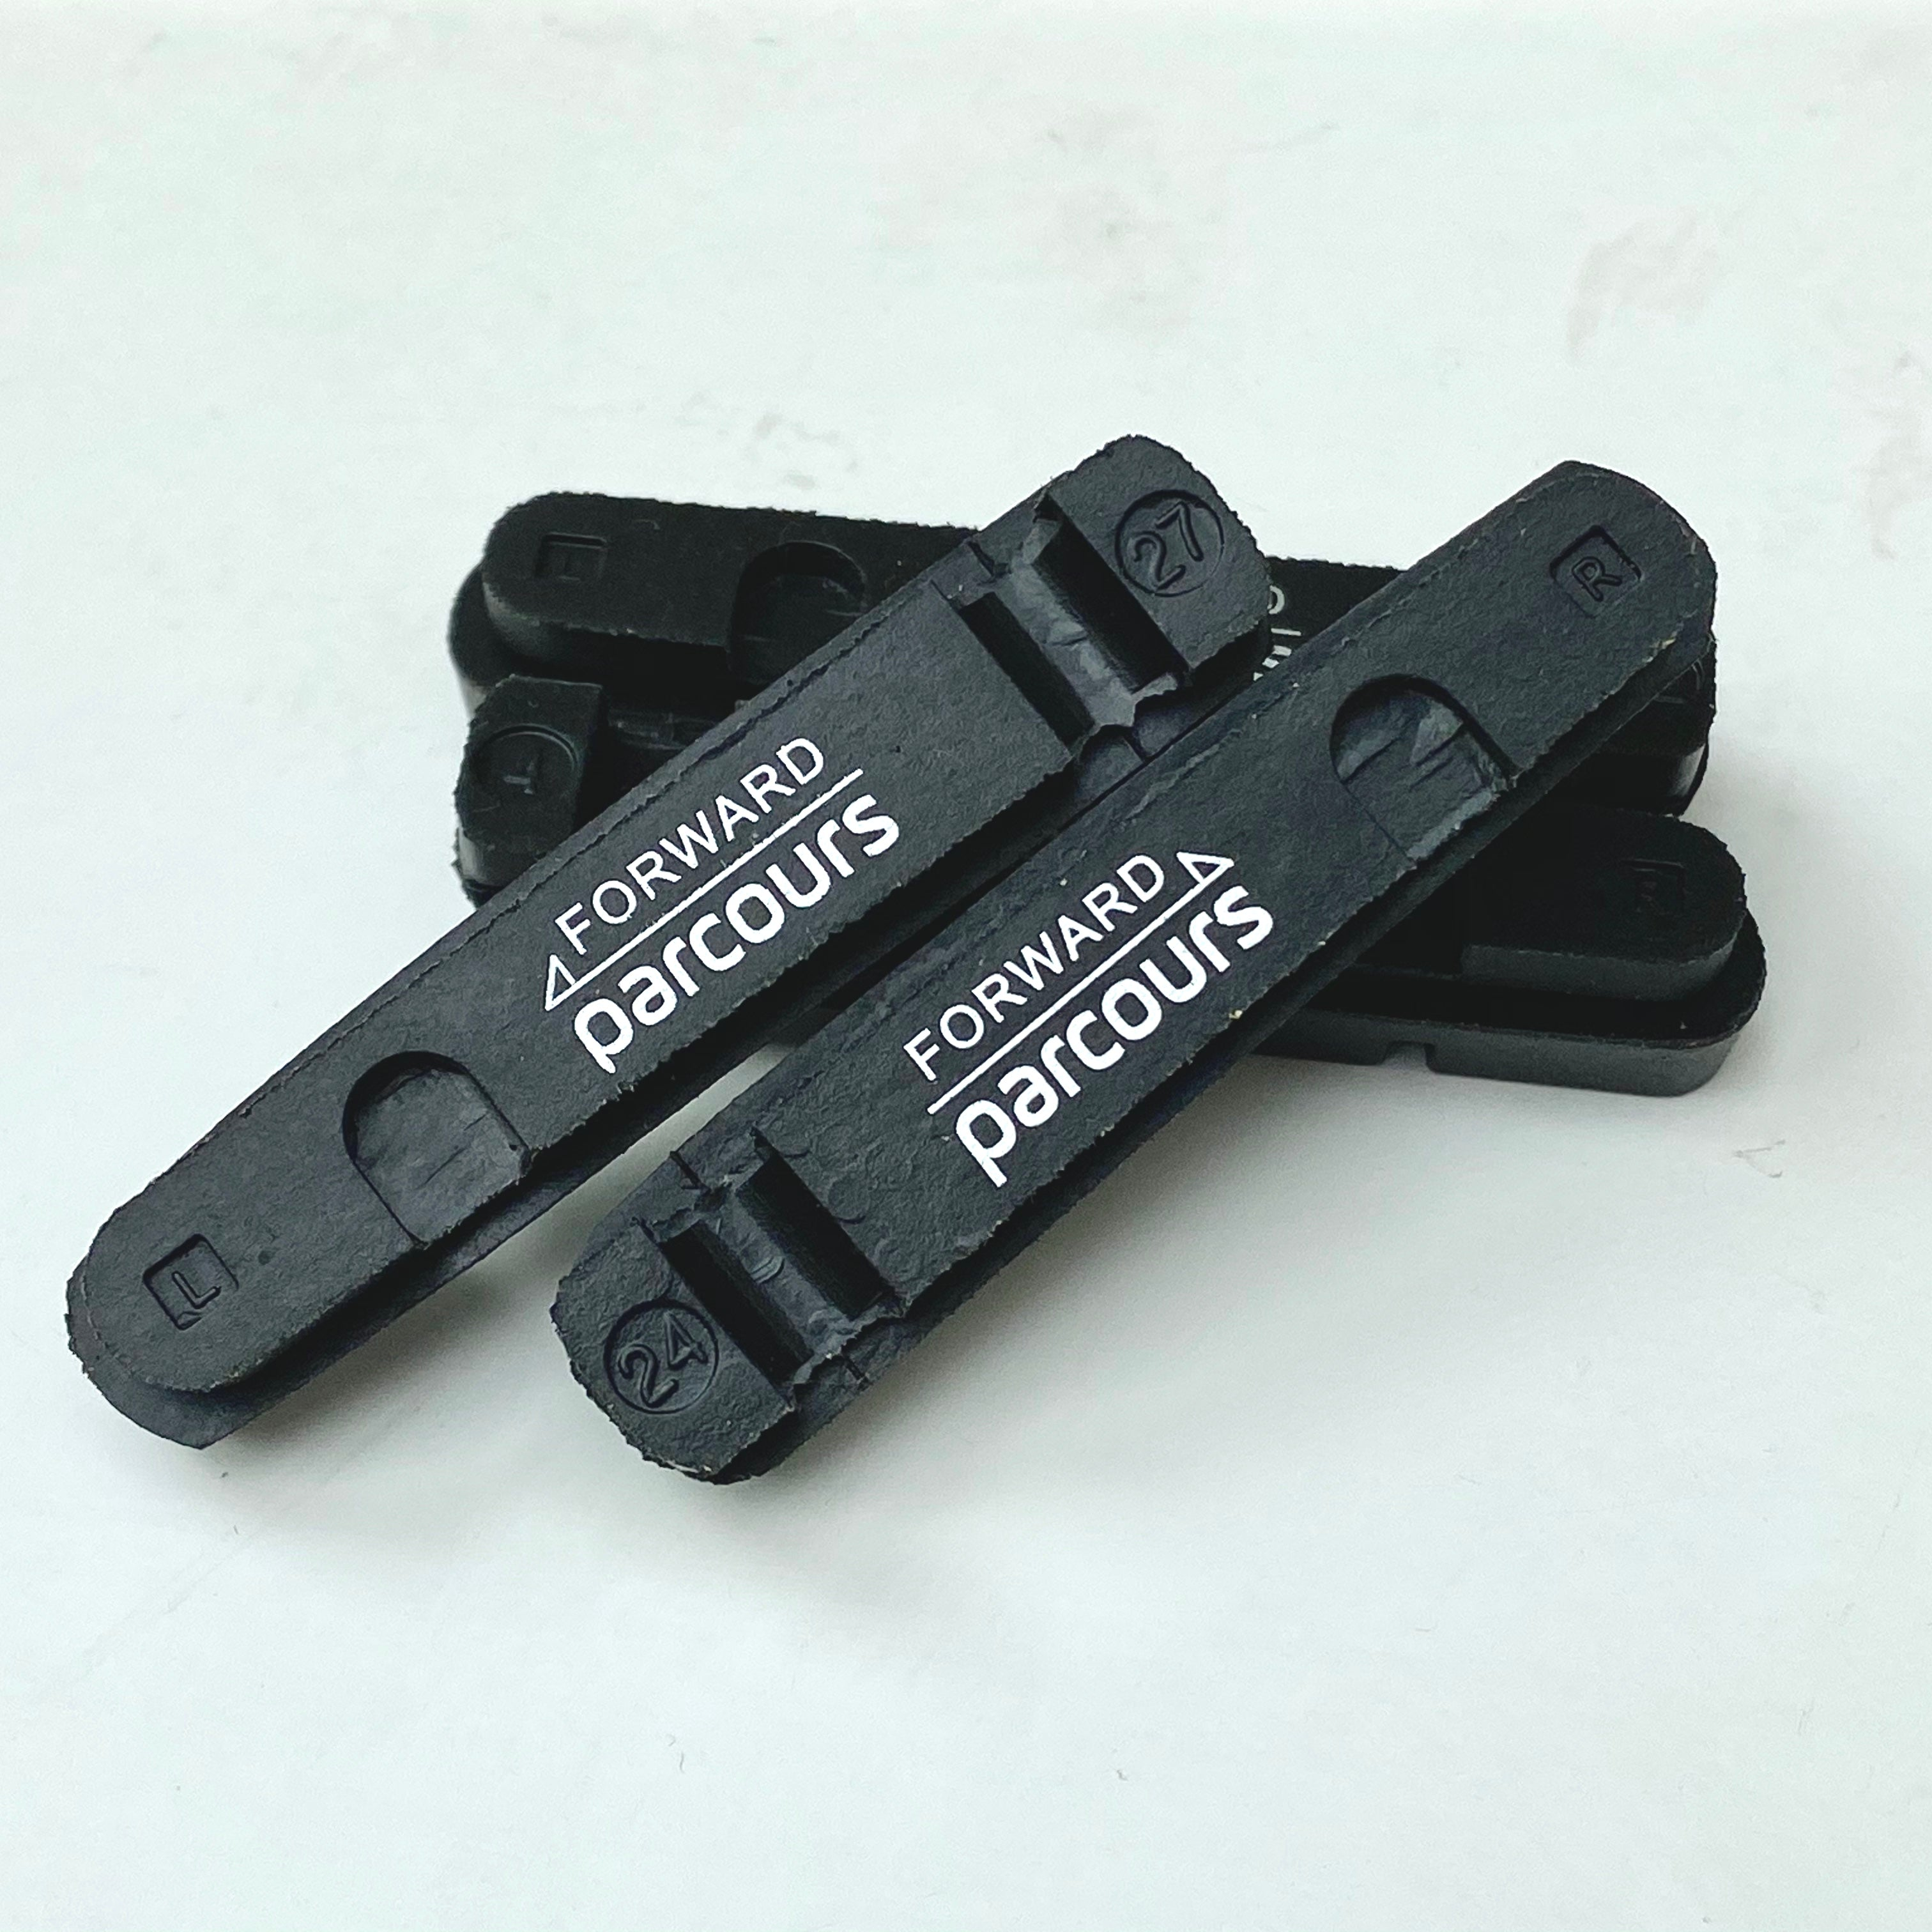 Parcours carbon-specific brake pads (set of 4)